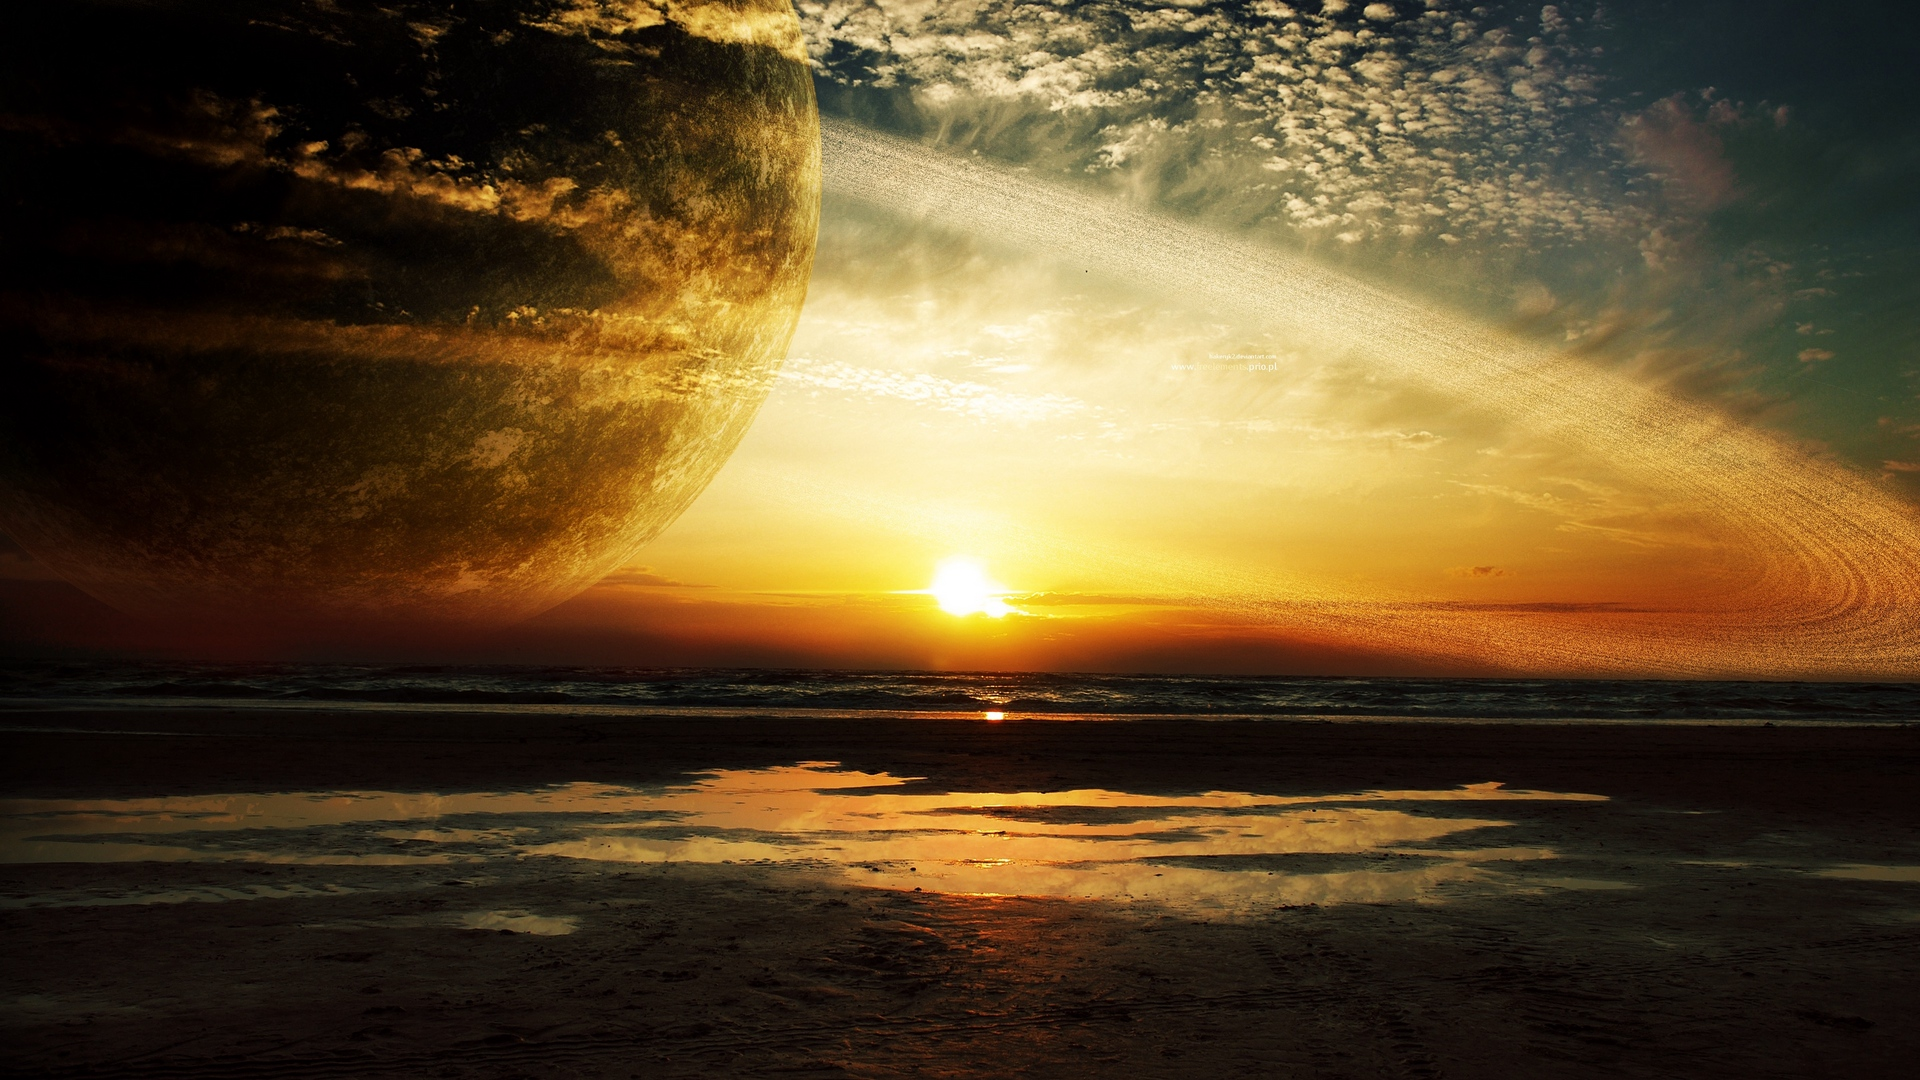 sunset sea rings planet x